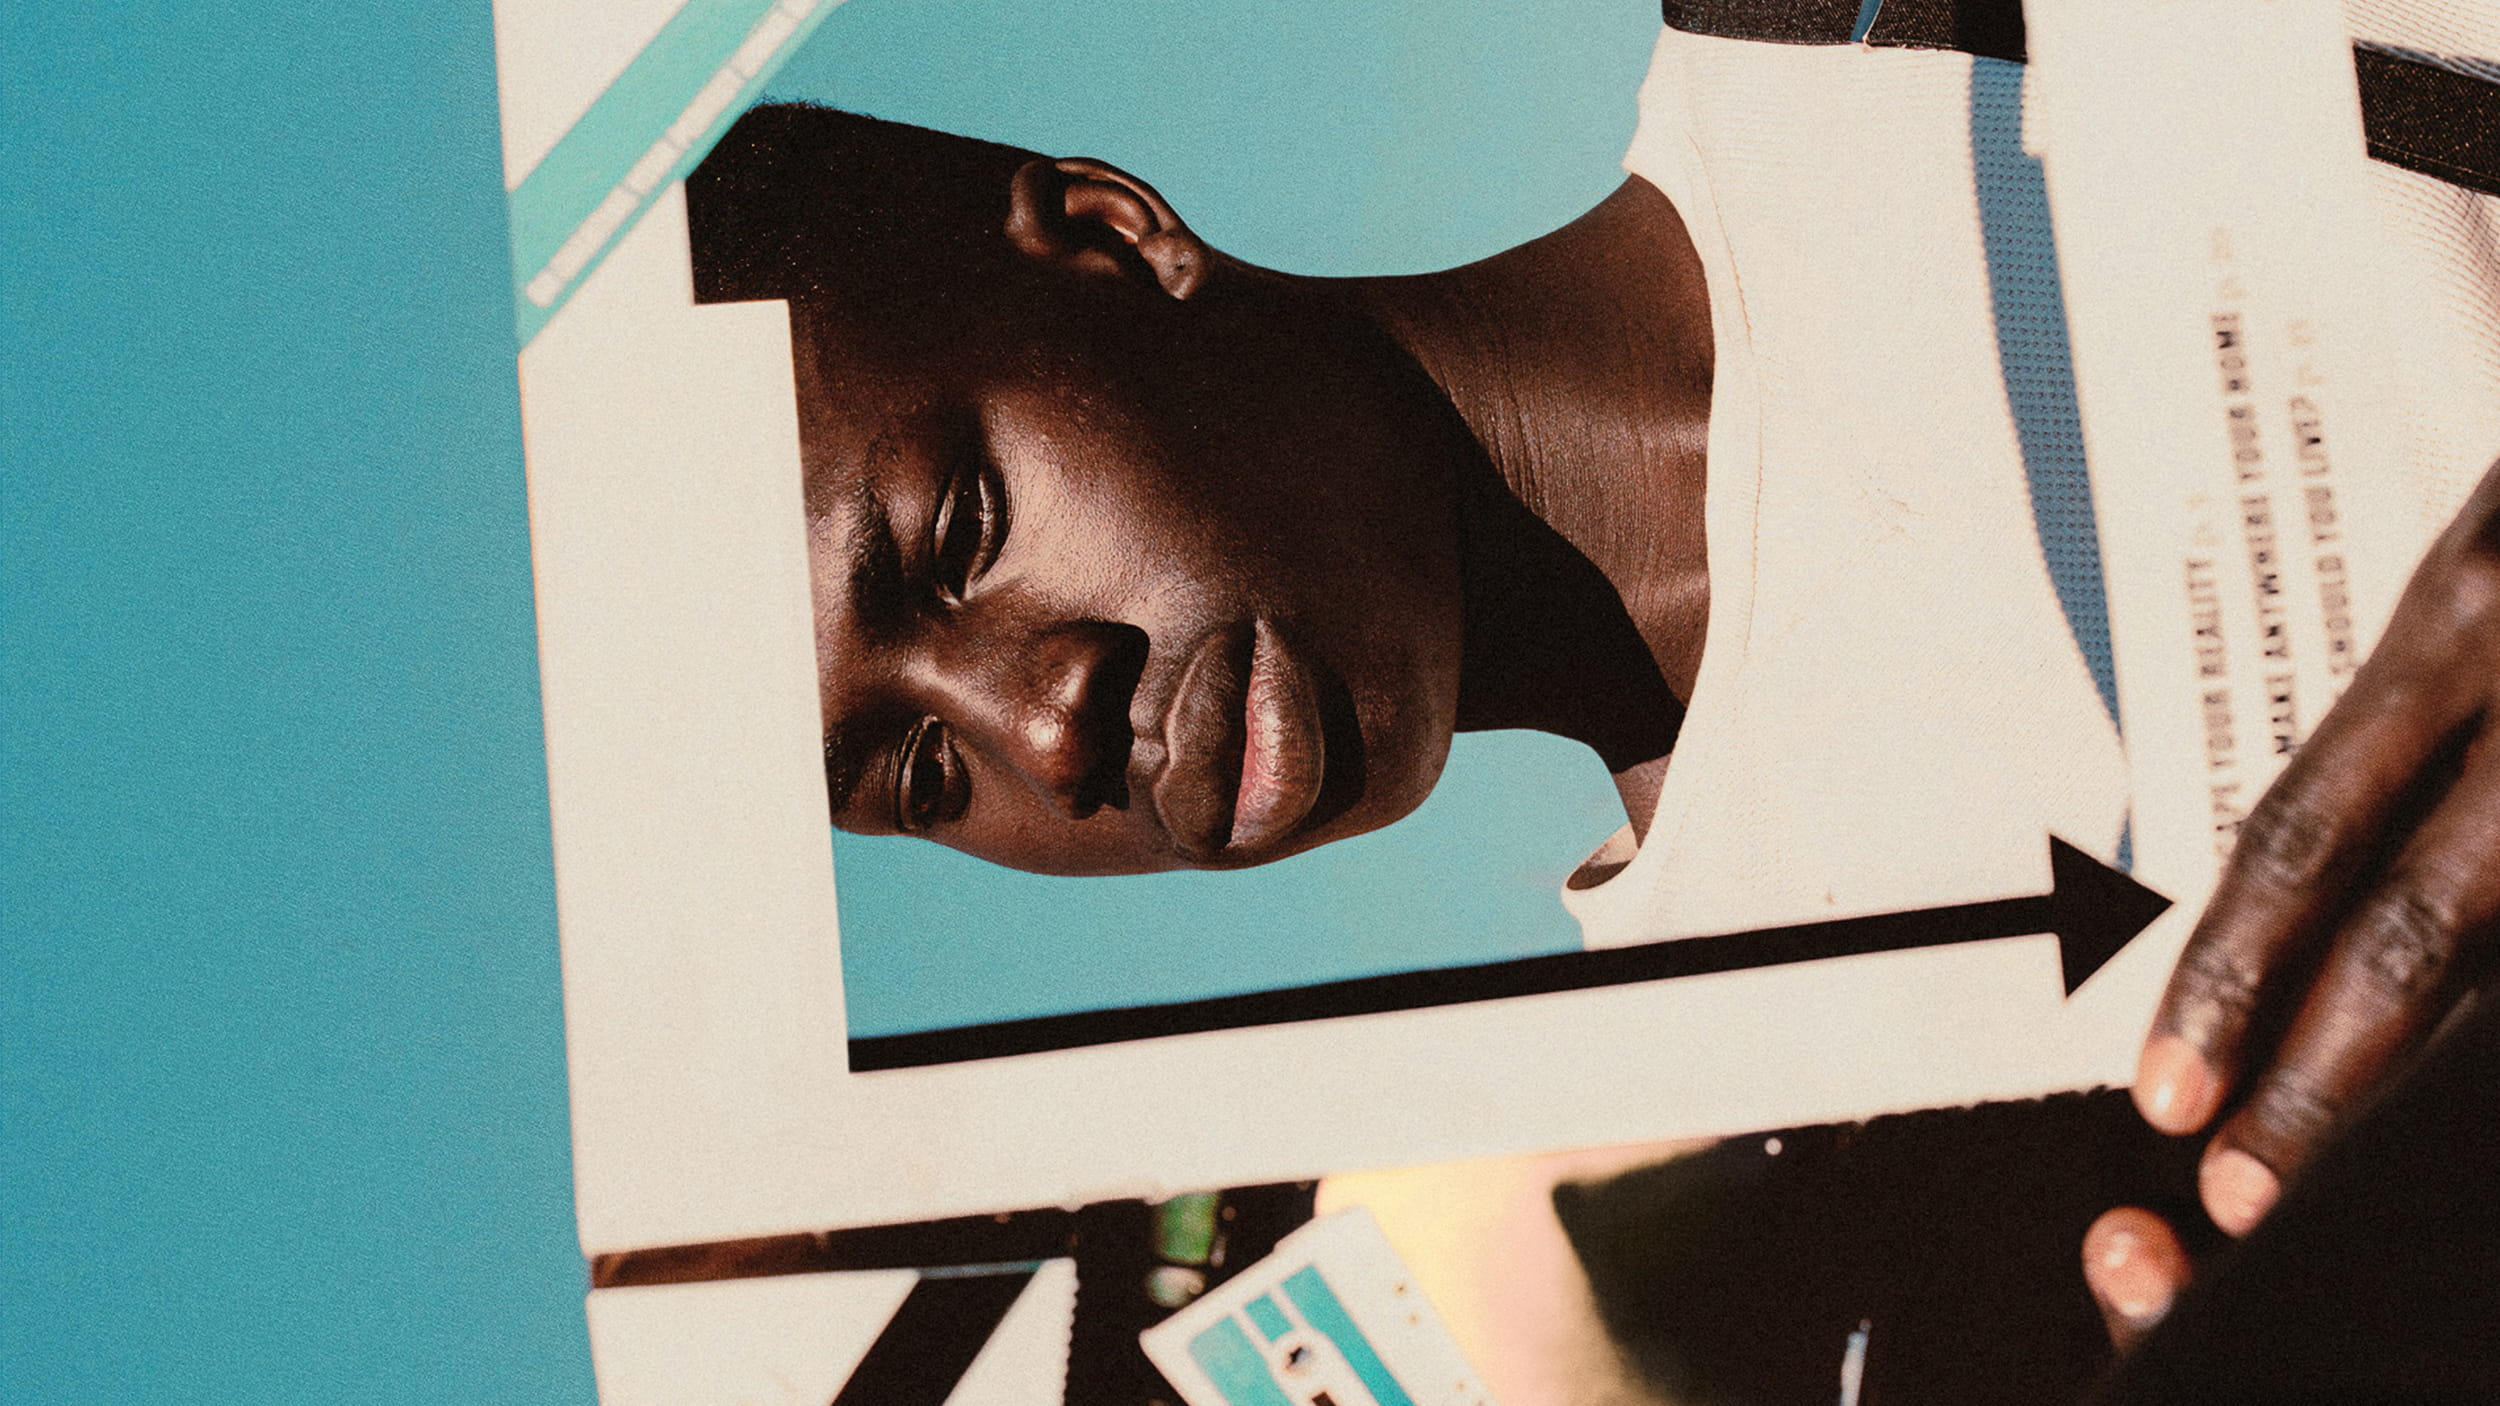 Horizontal image of a man reading a magazine with the front cover cut out so his face is visible| iProspect Global